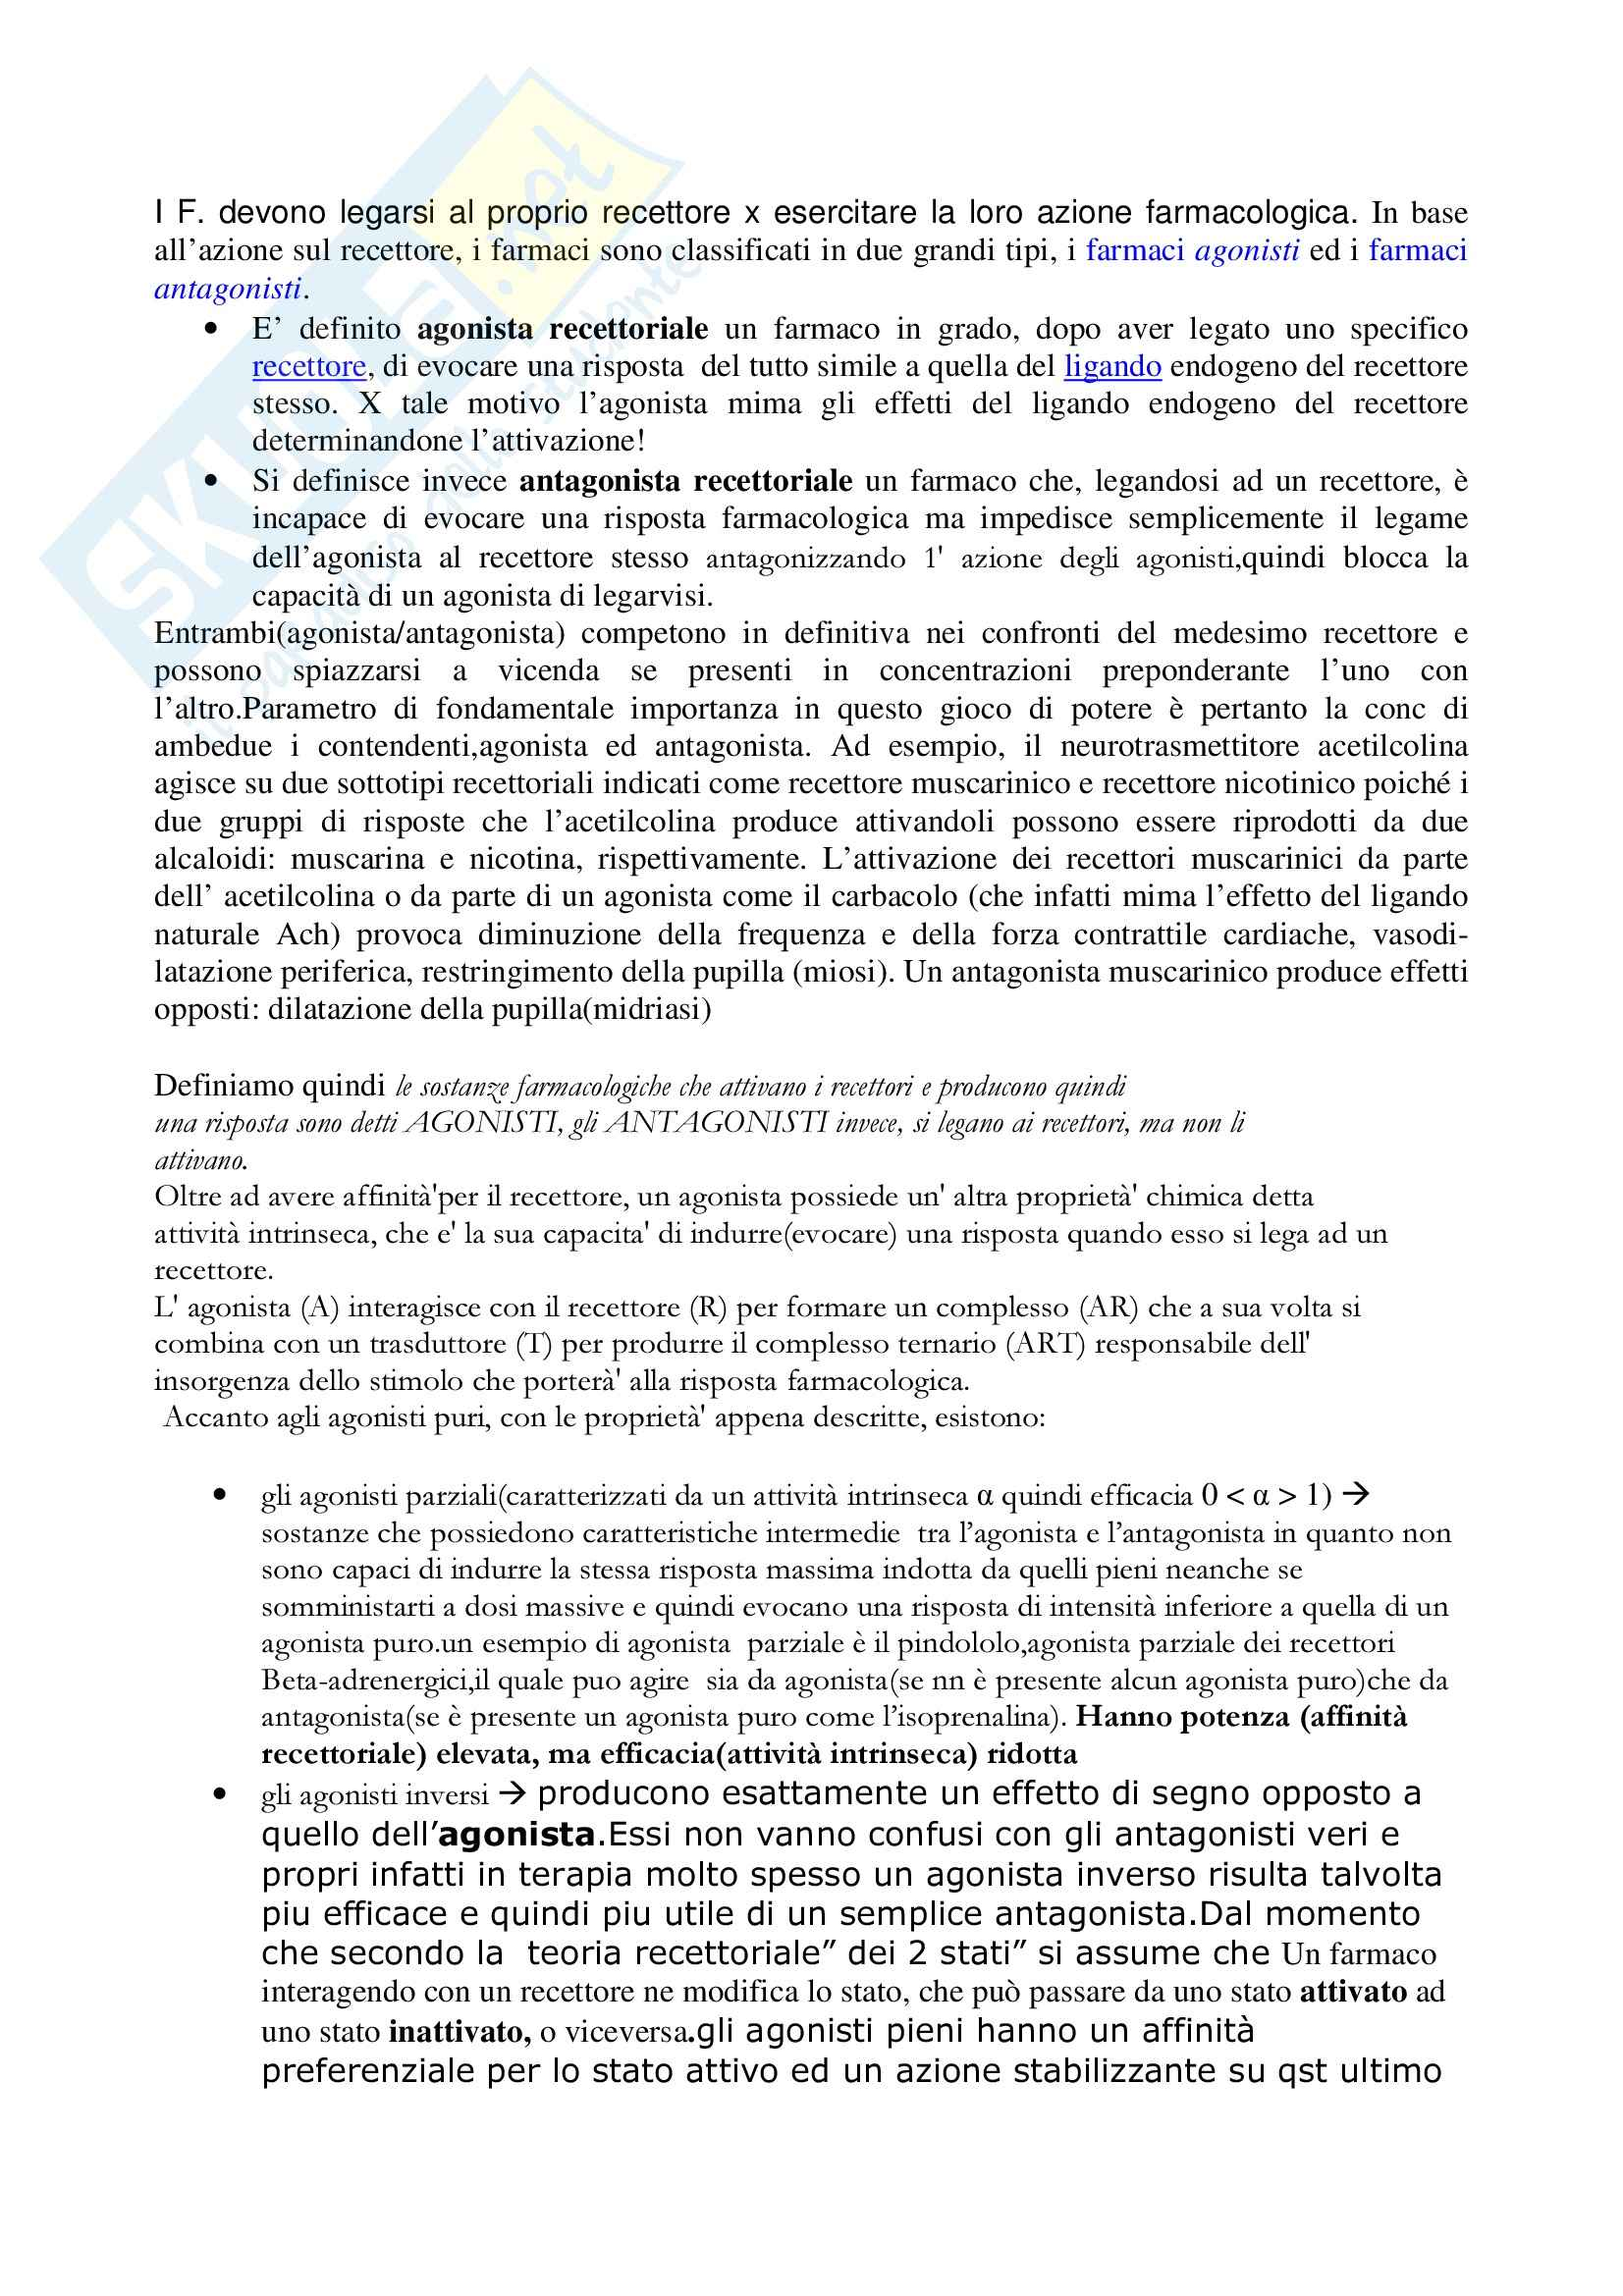 Farmacologia generale - agonista ed antagonista recettoriale Pag. 1